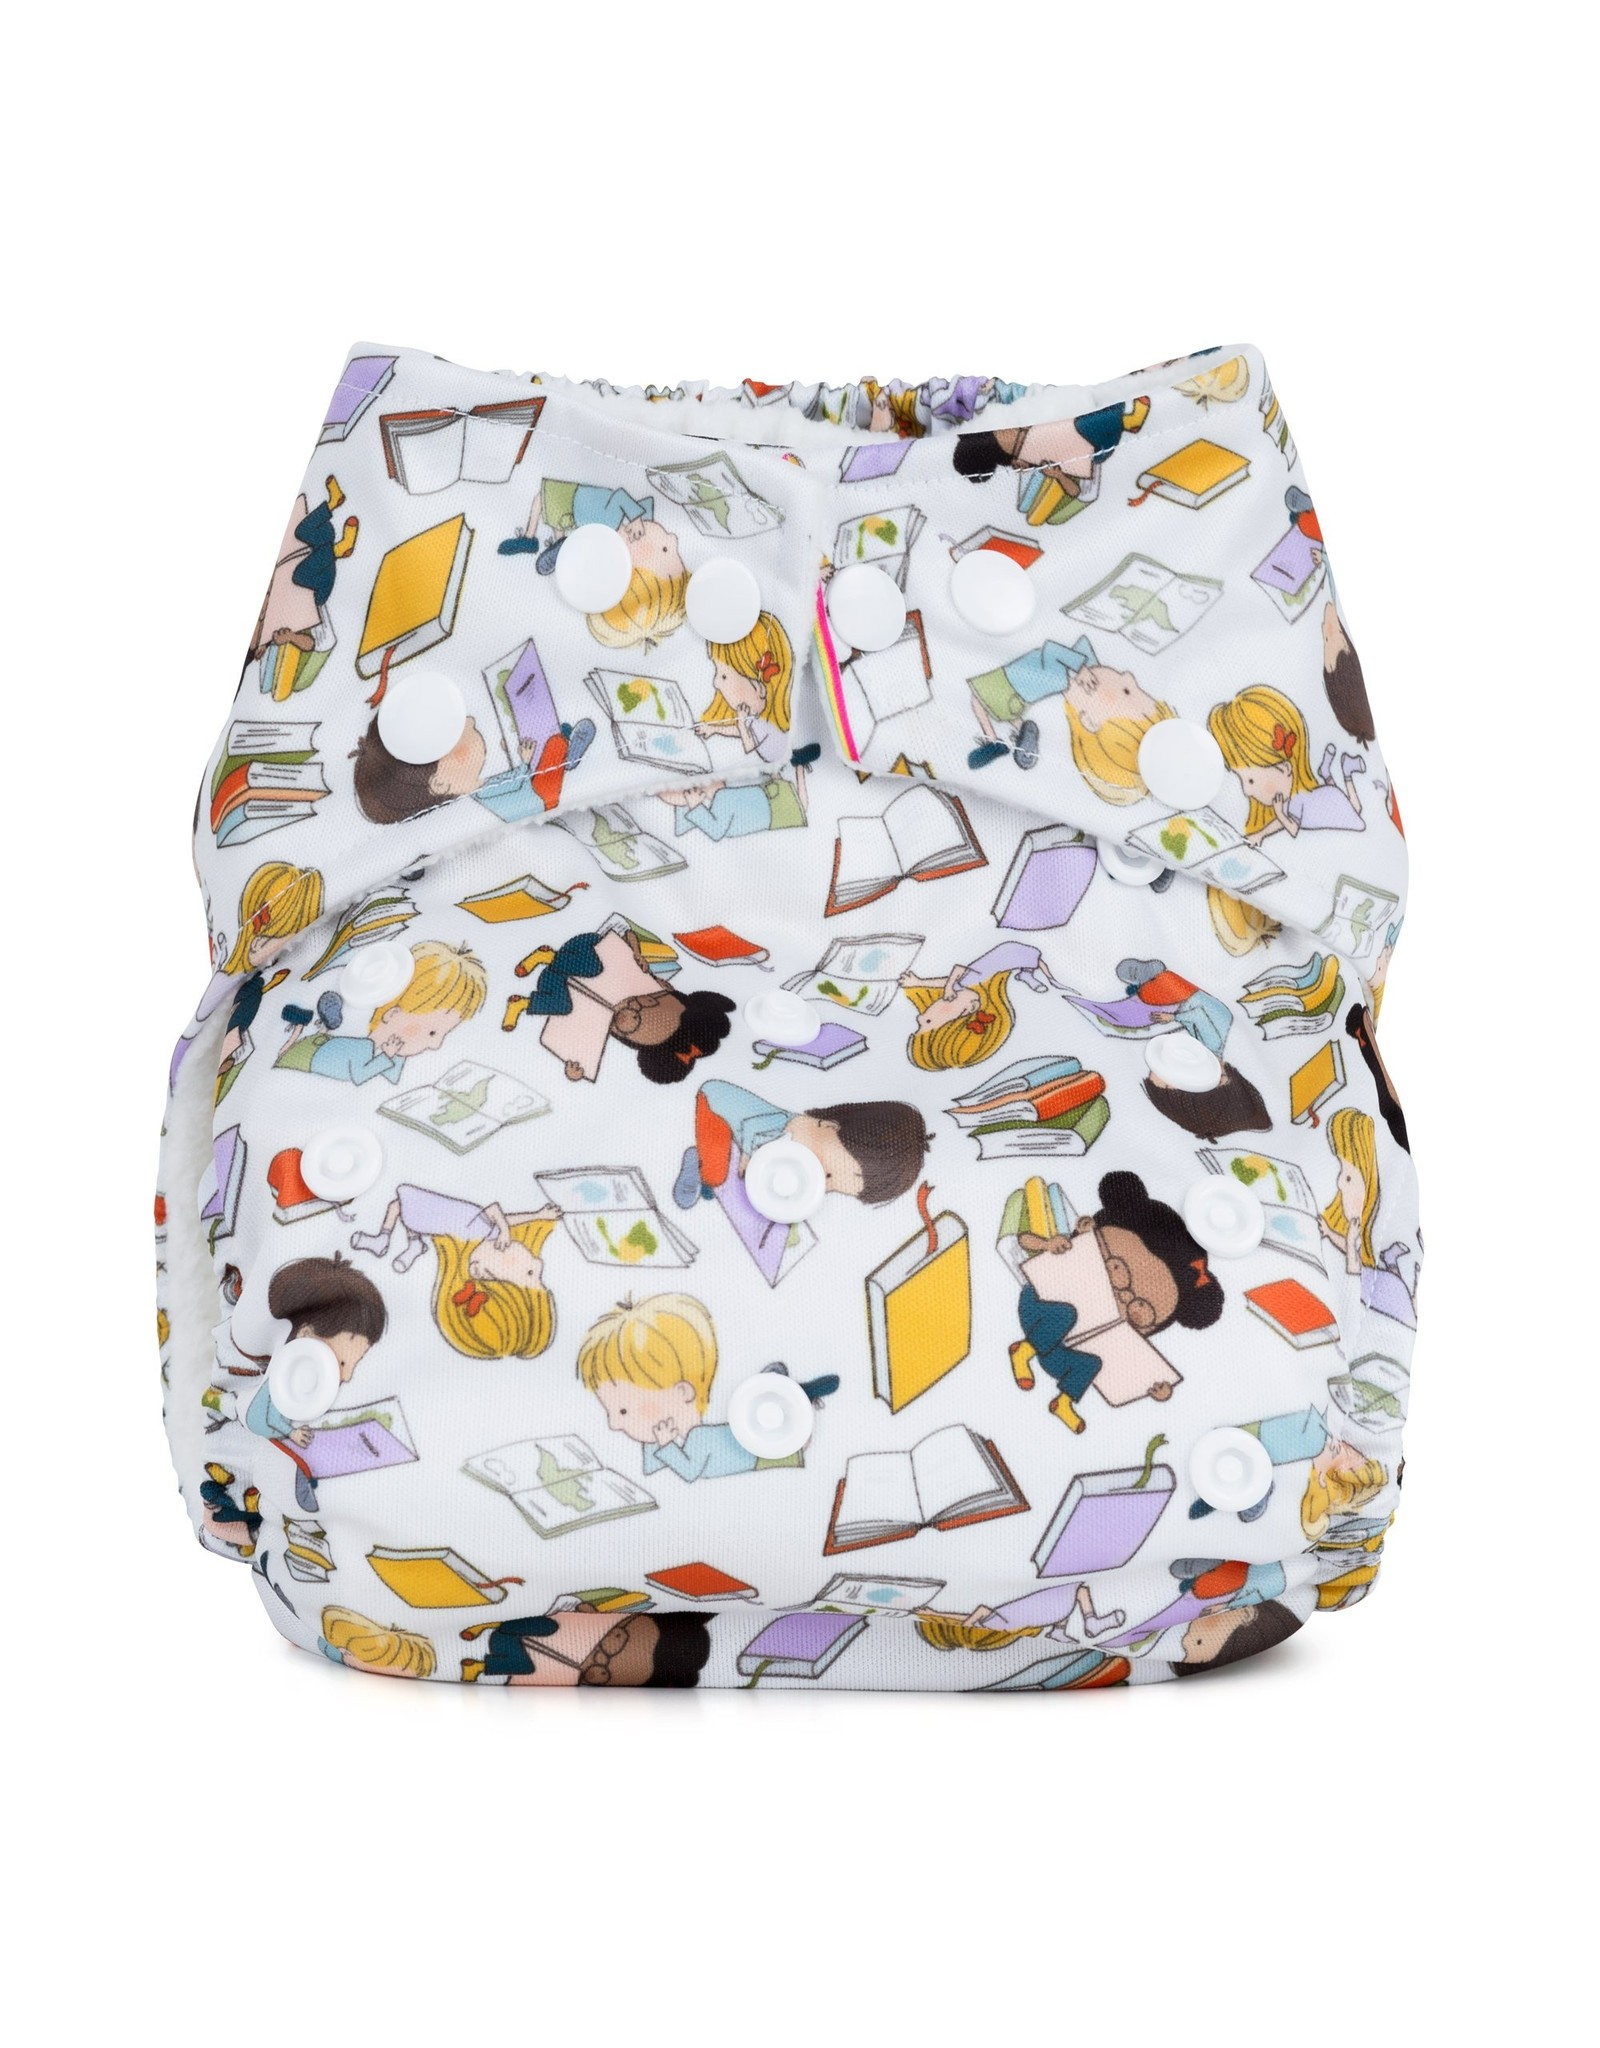 Baba & Boo One Size Reusable Nappy - Prints